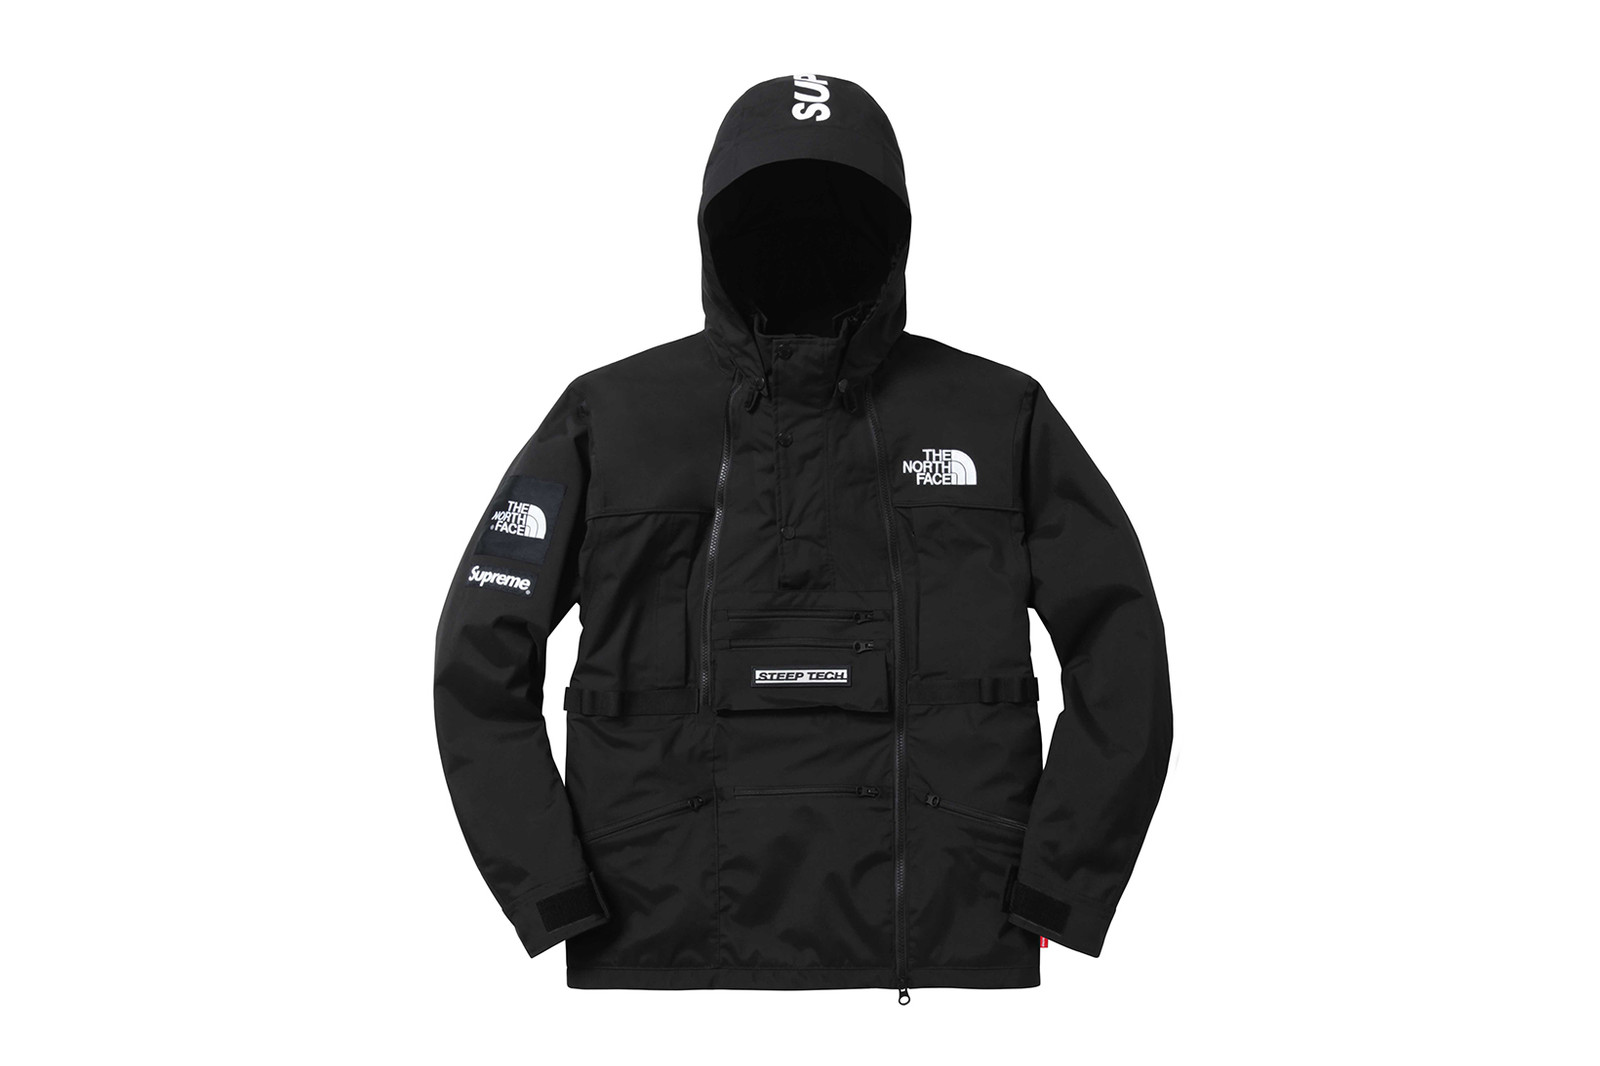 4eb44eca0e Supreme x The North Face 2016 Spring Summer Steep Tech Collection ...